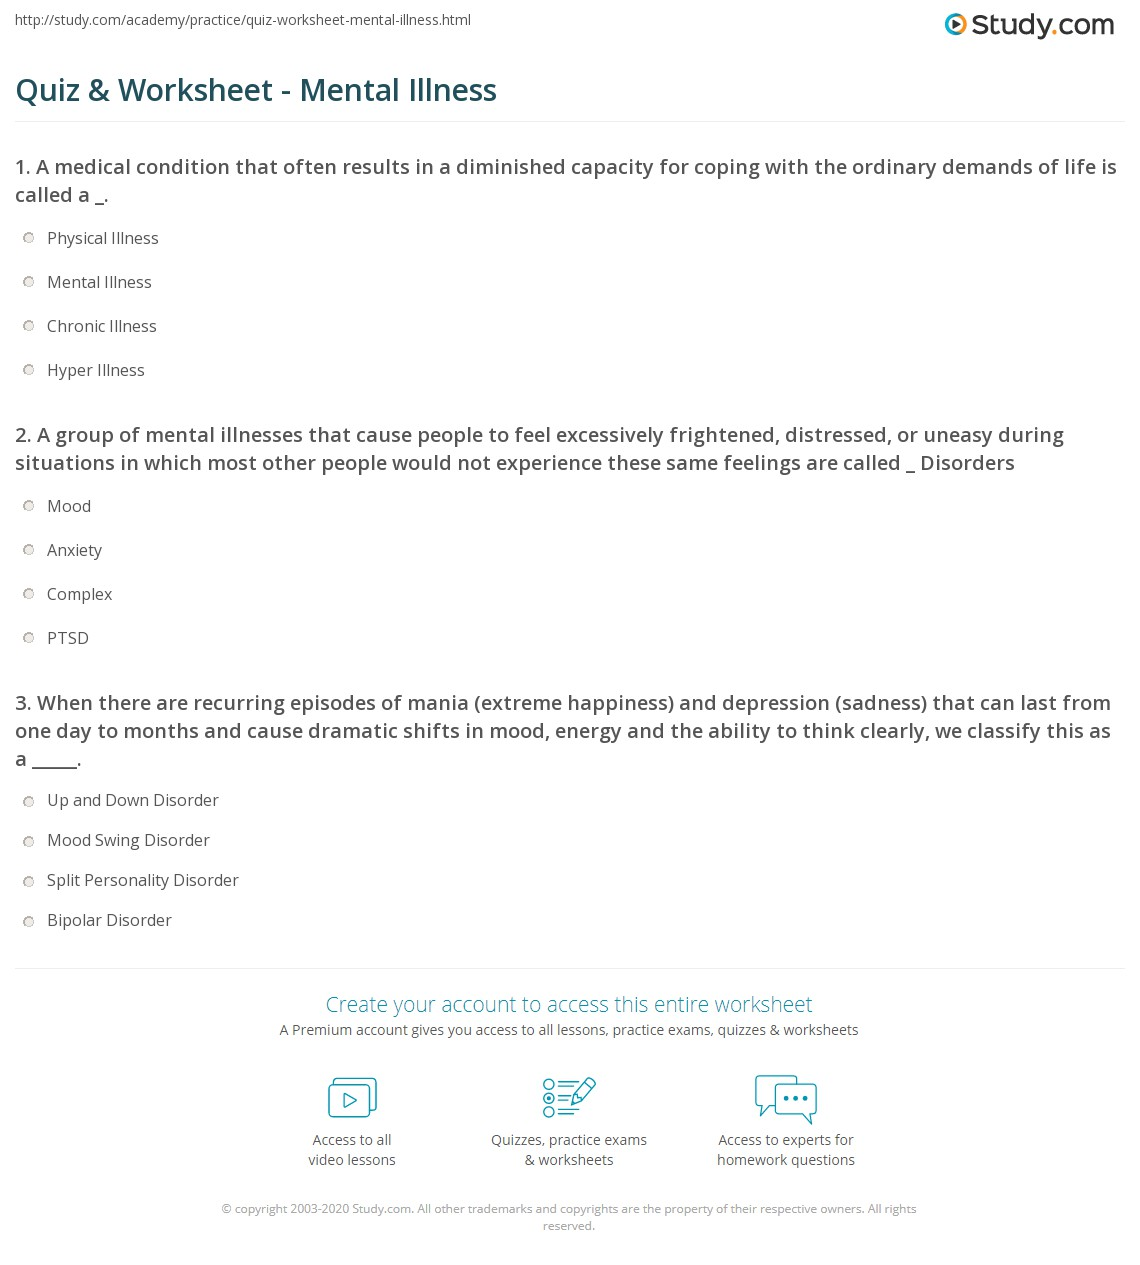 Printables Mental Illness Worksheets quiz worksheet mental illness study com a group of illnesses that cause people to feel excessively frightened distressed or uneasy during situations in which most other would